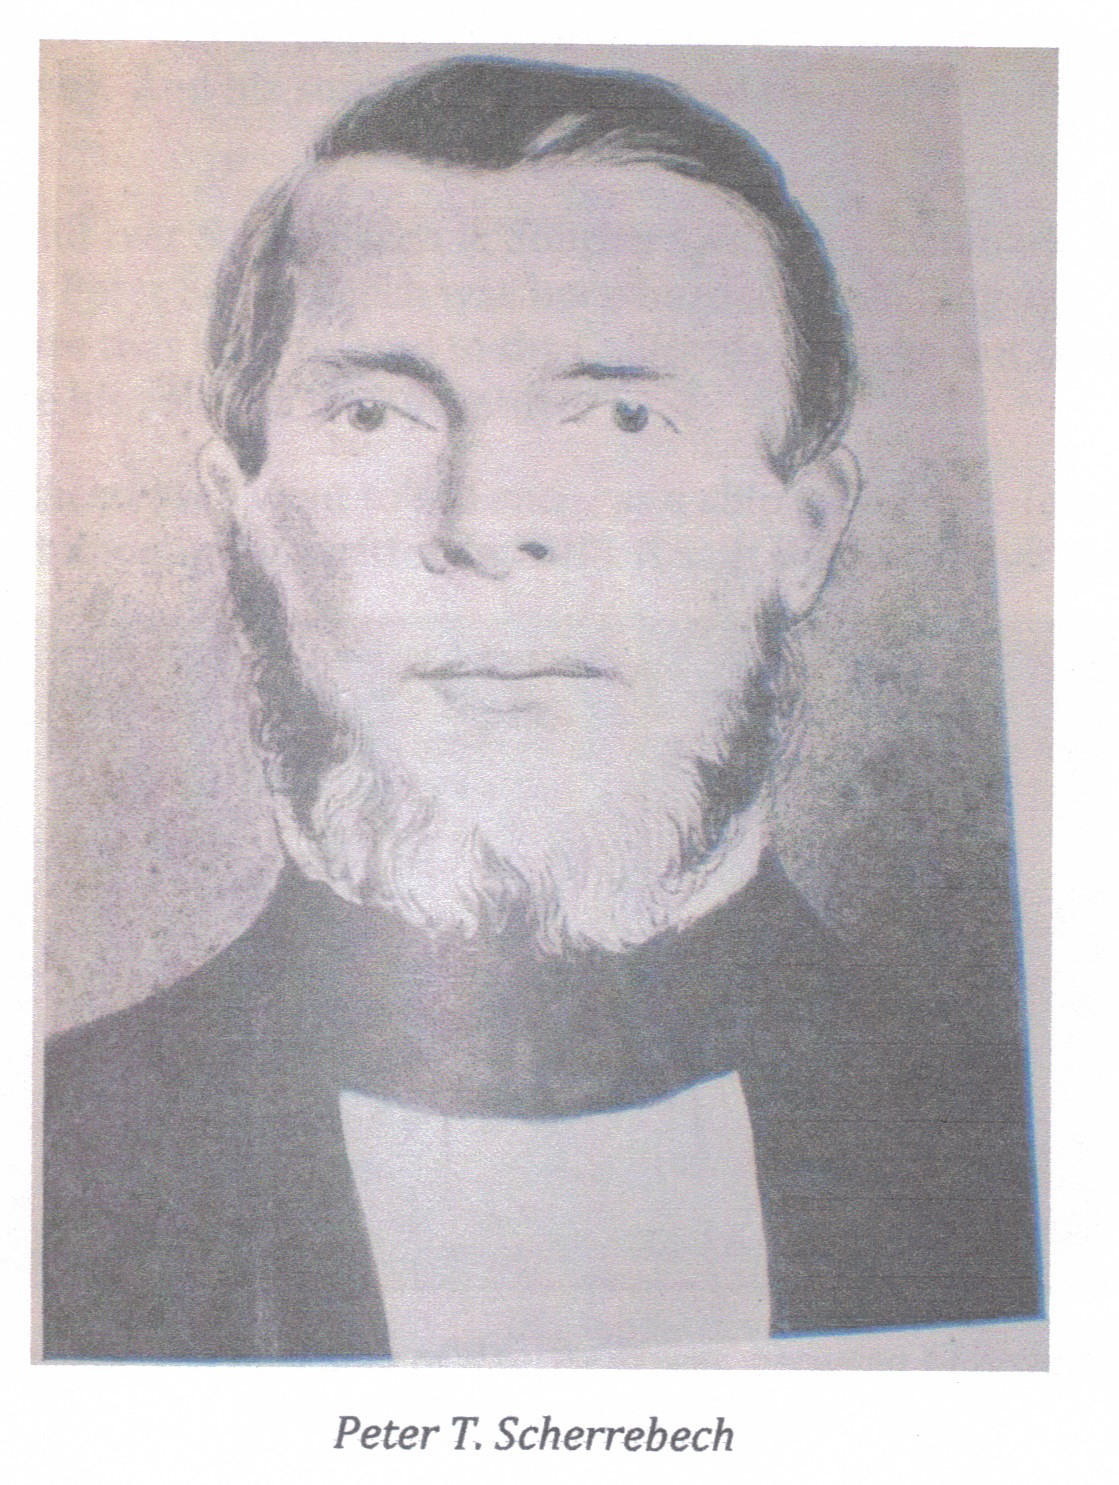 Peter Thomas Sherreback about 1850's